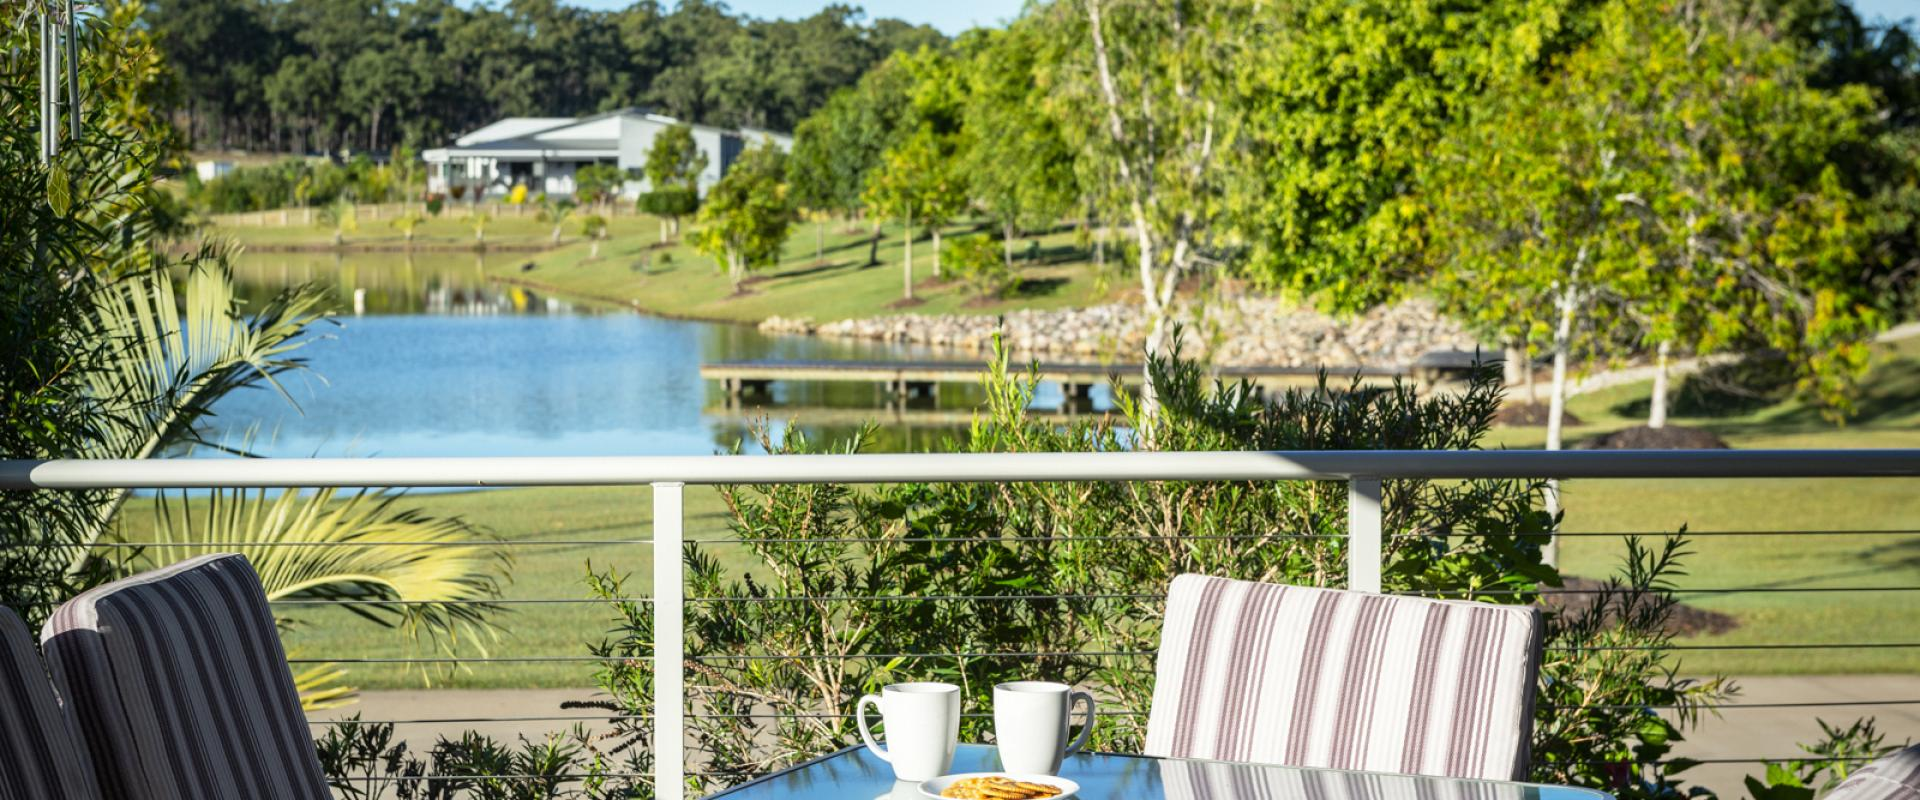 Fraser Coast Properties - OVER 50'S ULTIMATE RV LIFESTYLE COMMUNITY